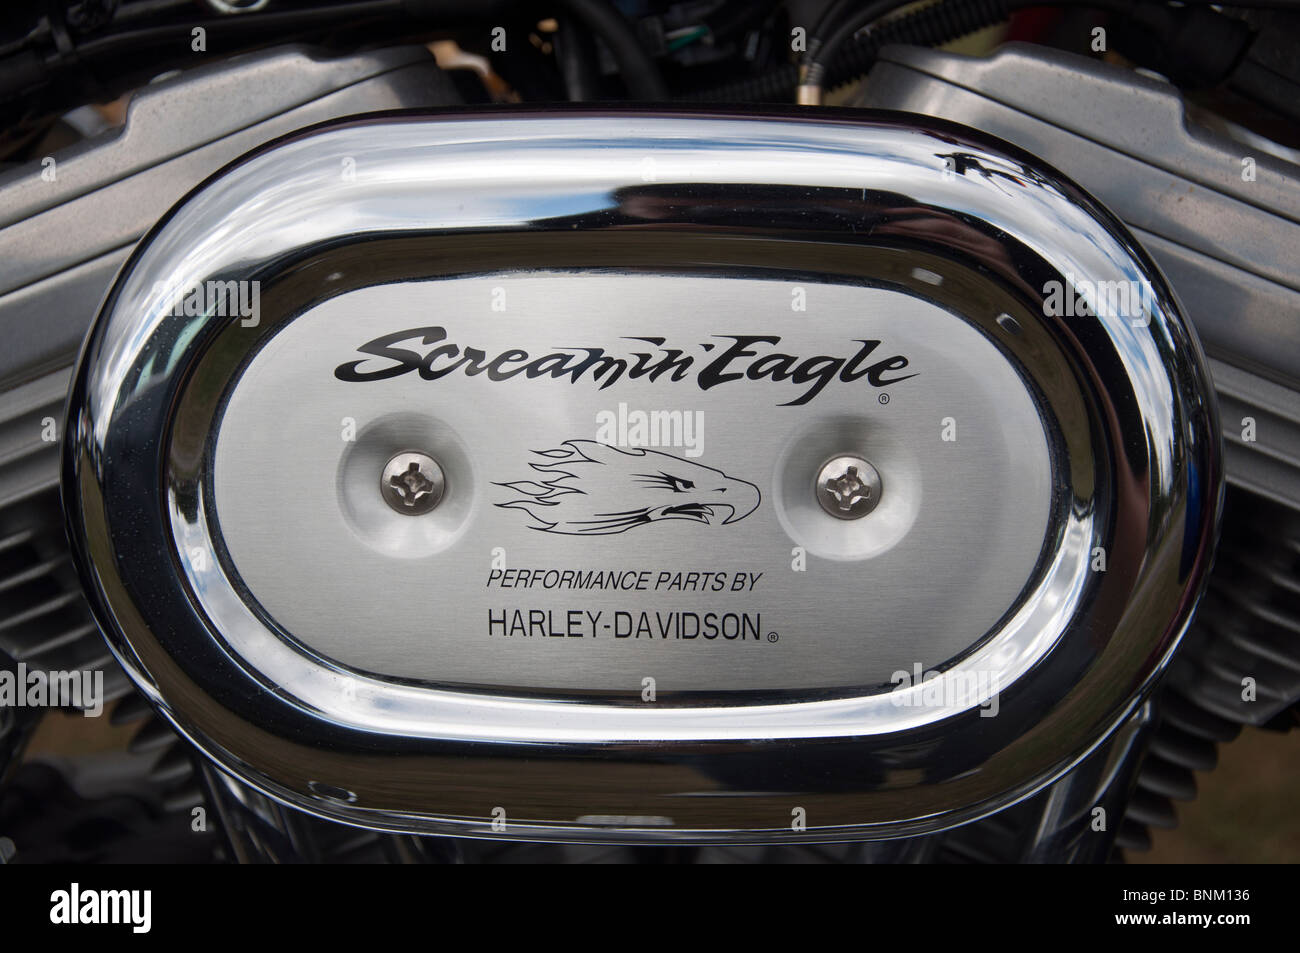 the harley davidson screamin eagle logo on the side of a motorcycle